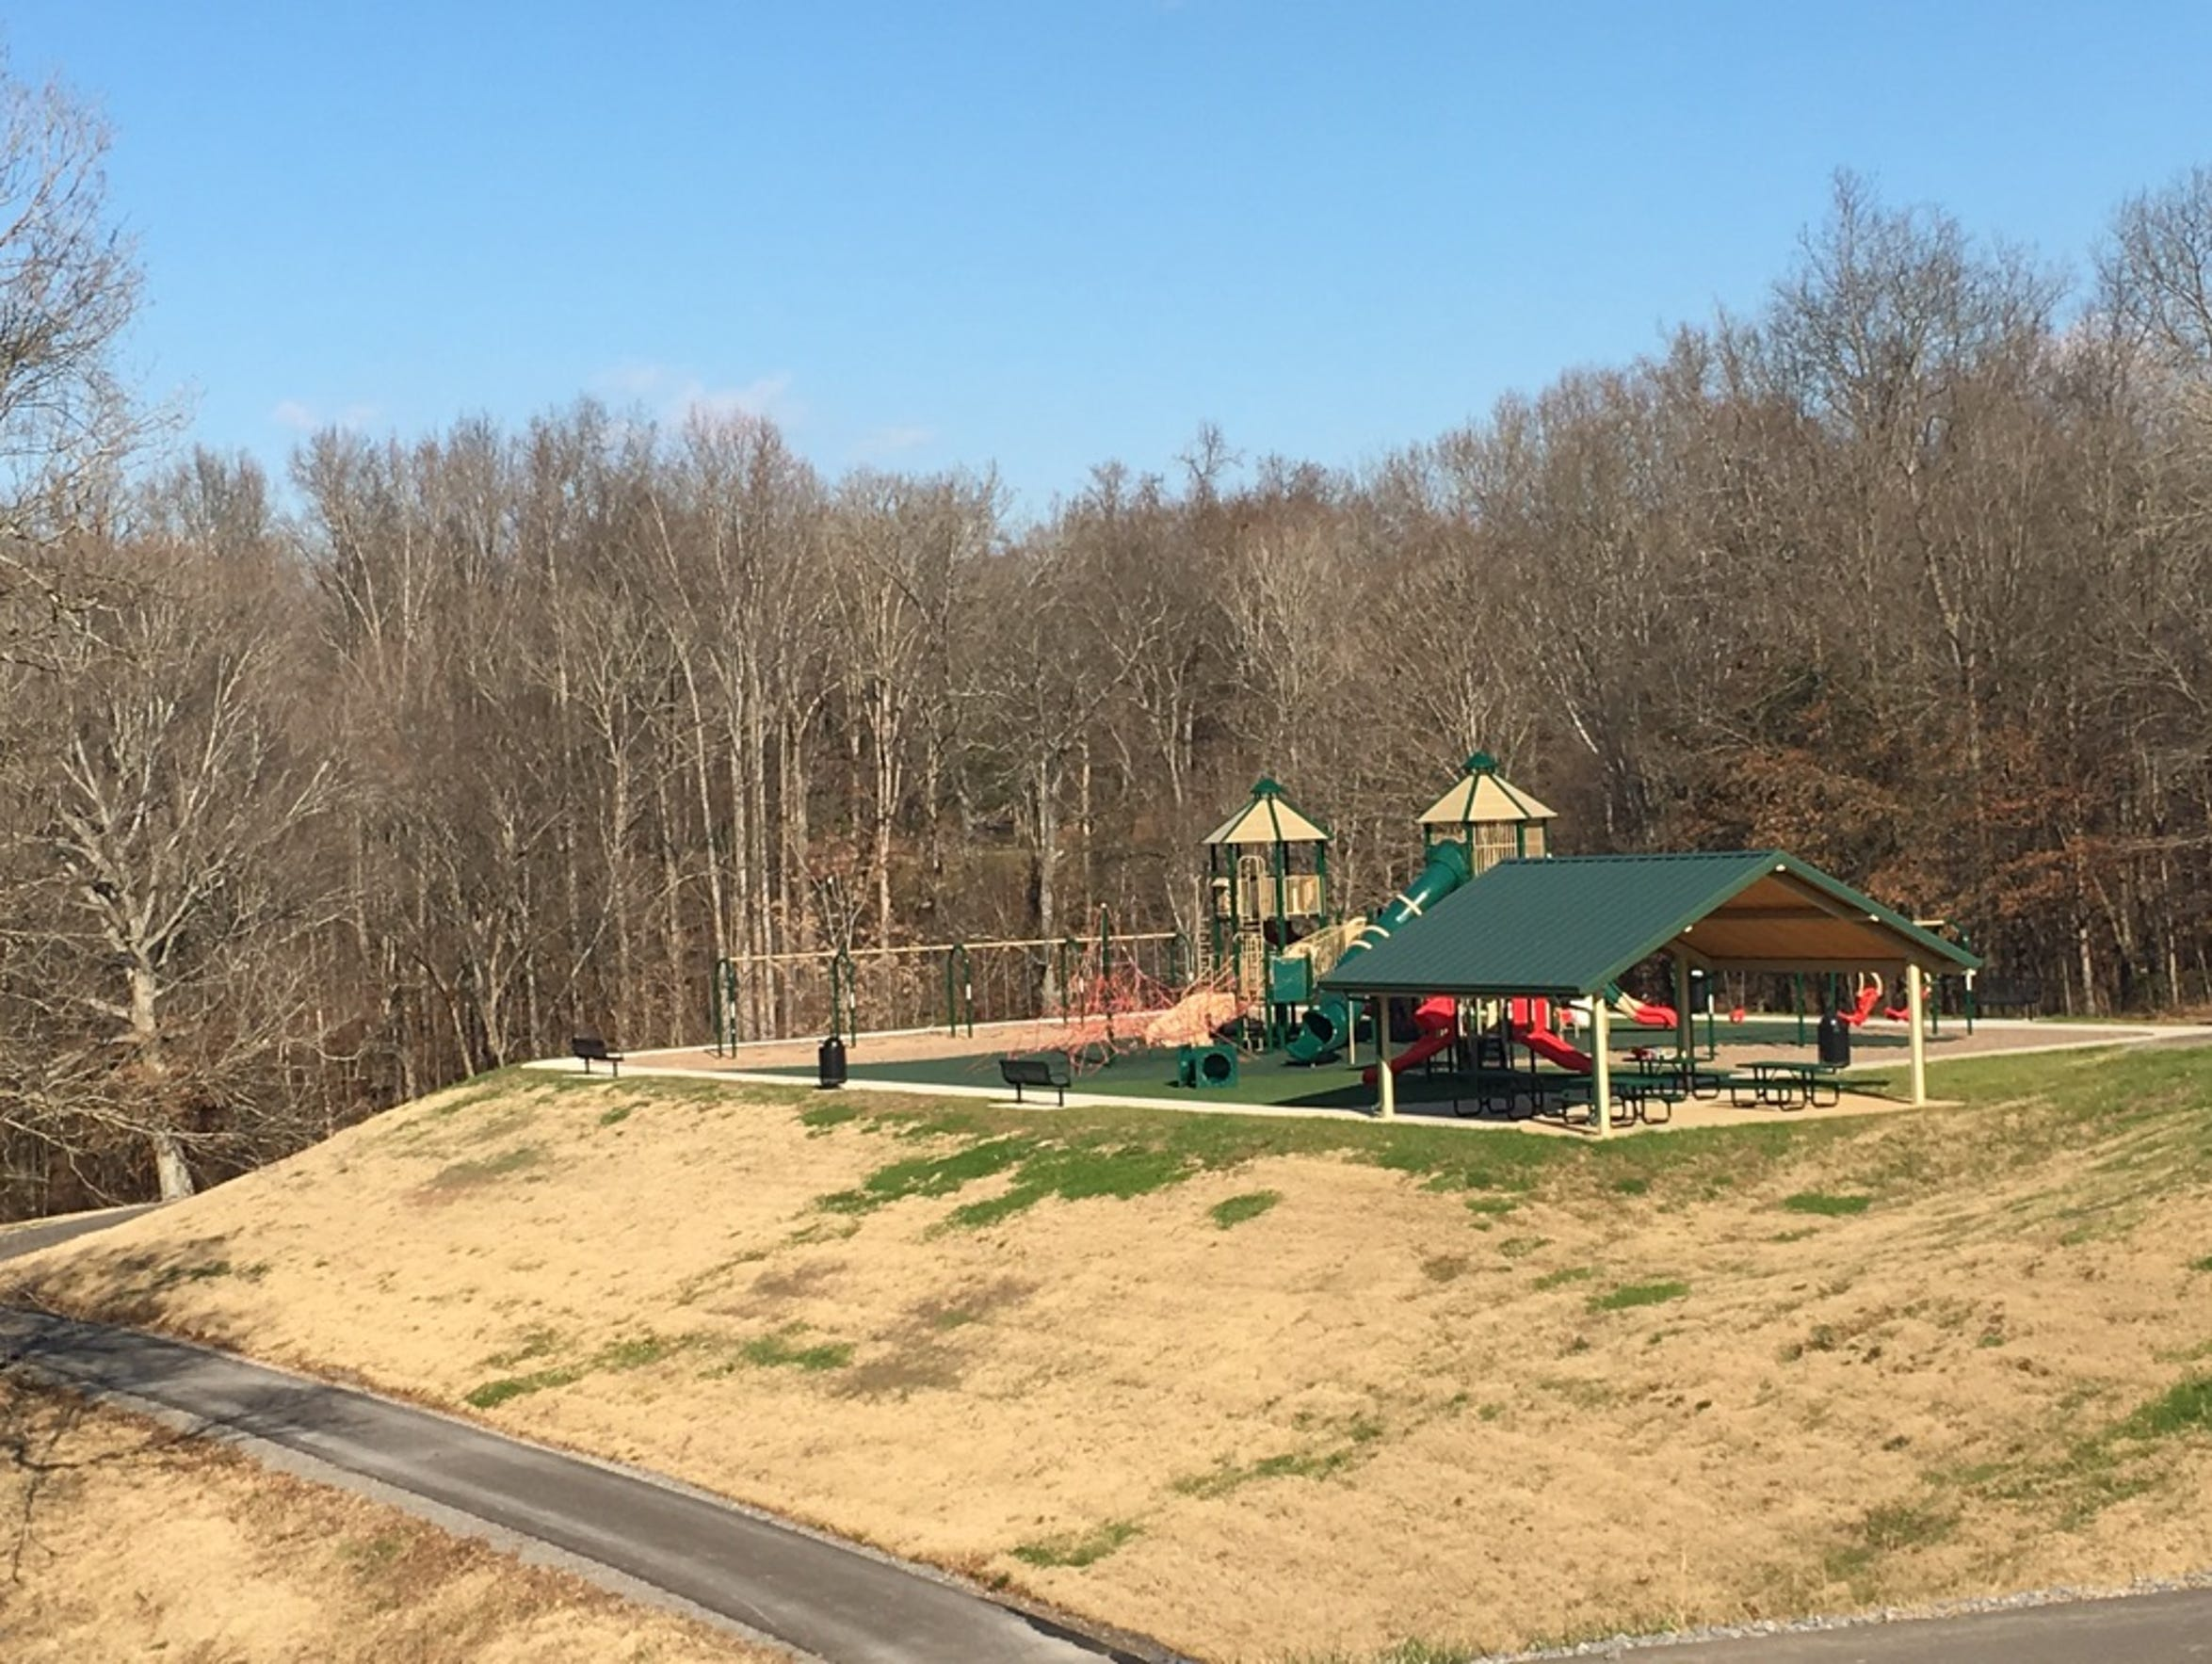 A paved walking trail winds around the main playground